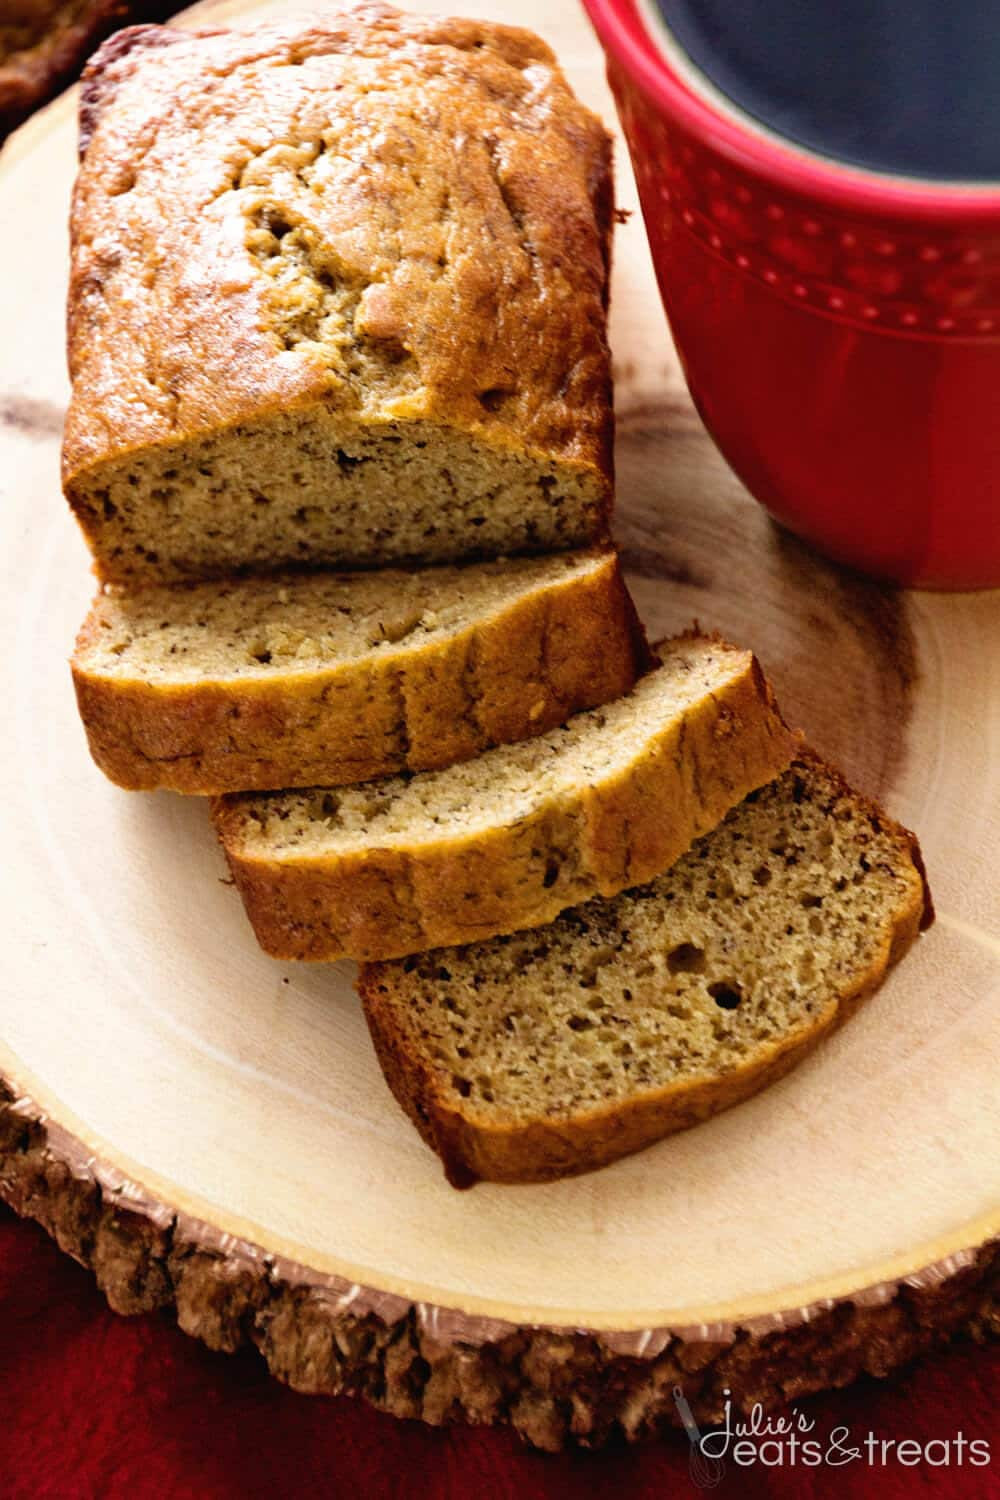 Healthy Banana Bread Recipes  Healthy Banana Bread Recipe Julie s Eats & Treats